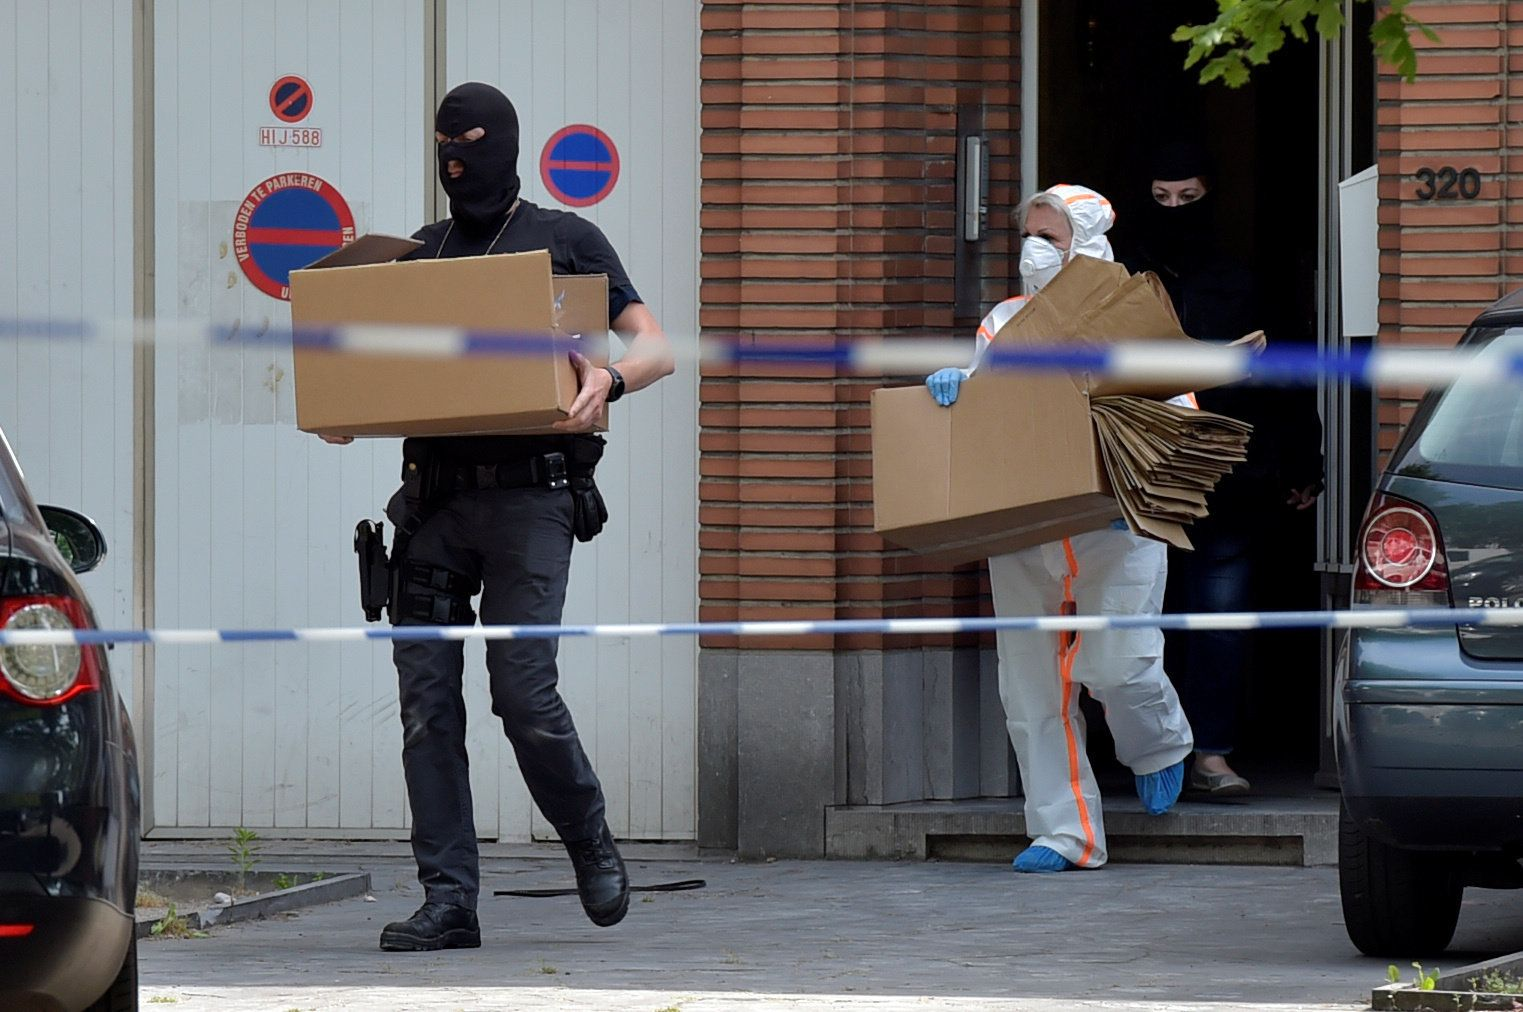 Belgian policemen get out of a house after searching it, following yesterday's attack, in Brussels, Belgium June 21, 2017. REUTERS/Eric Vidal